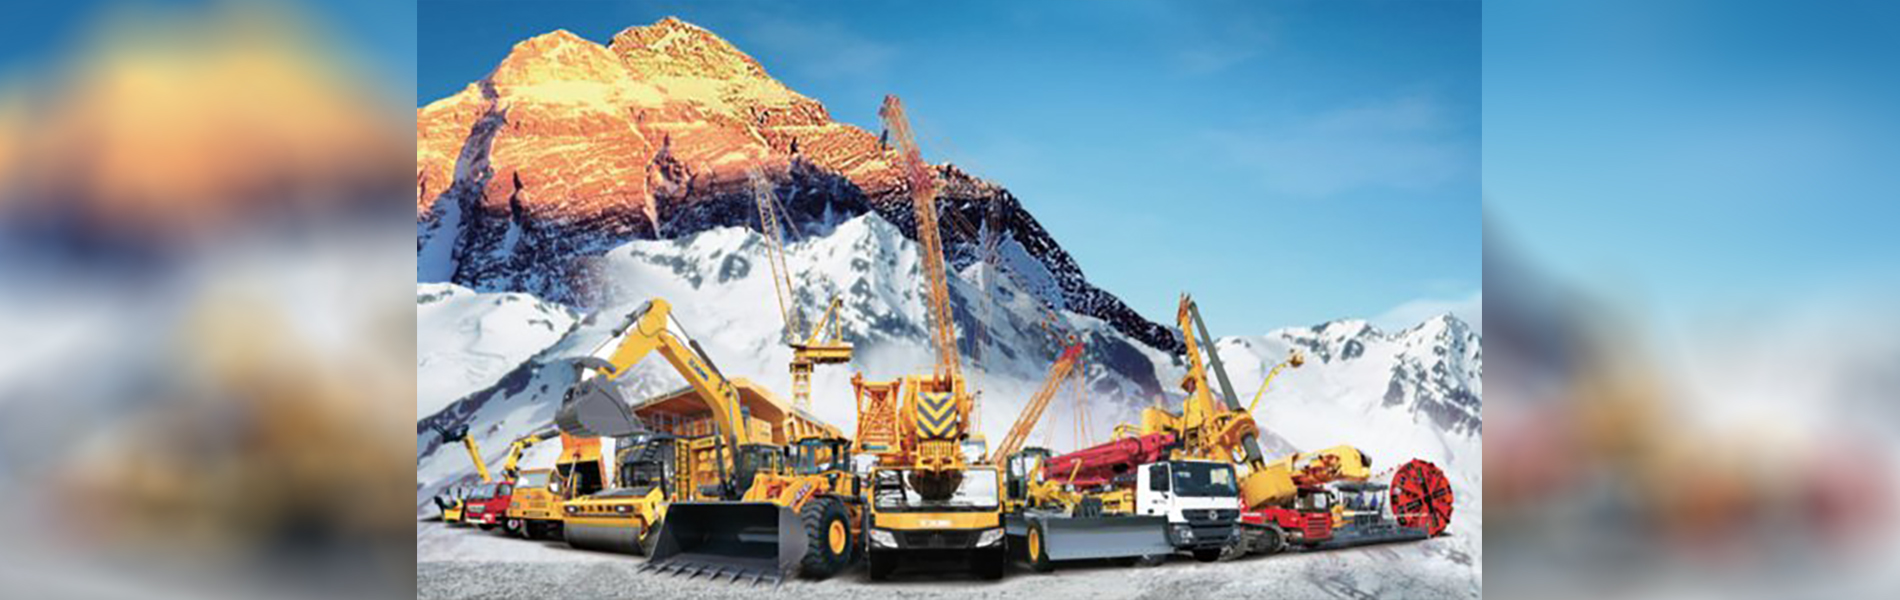 Banner image of a fleet of construction vehicles